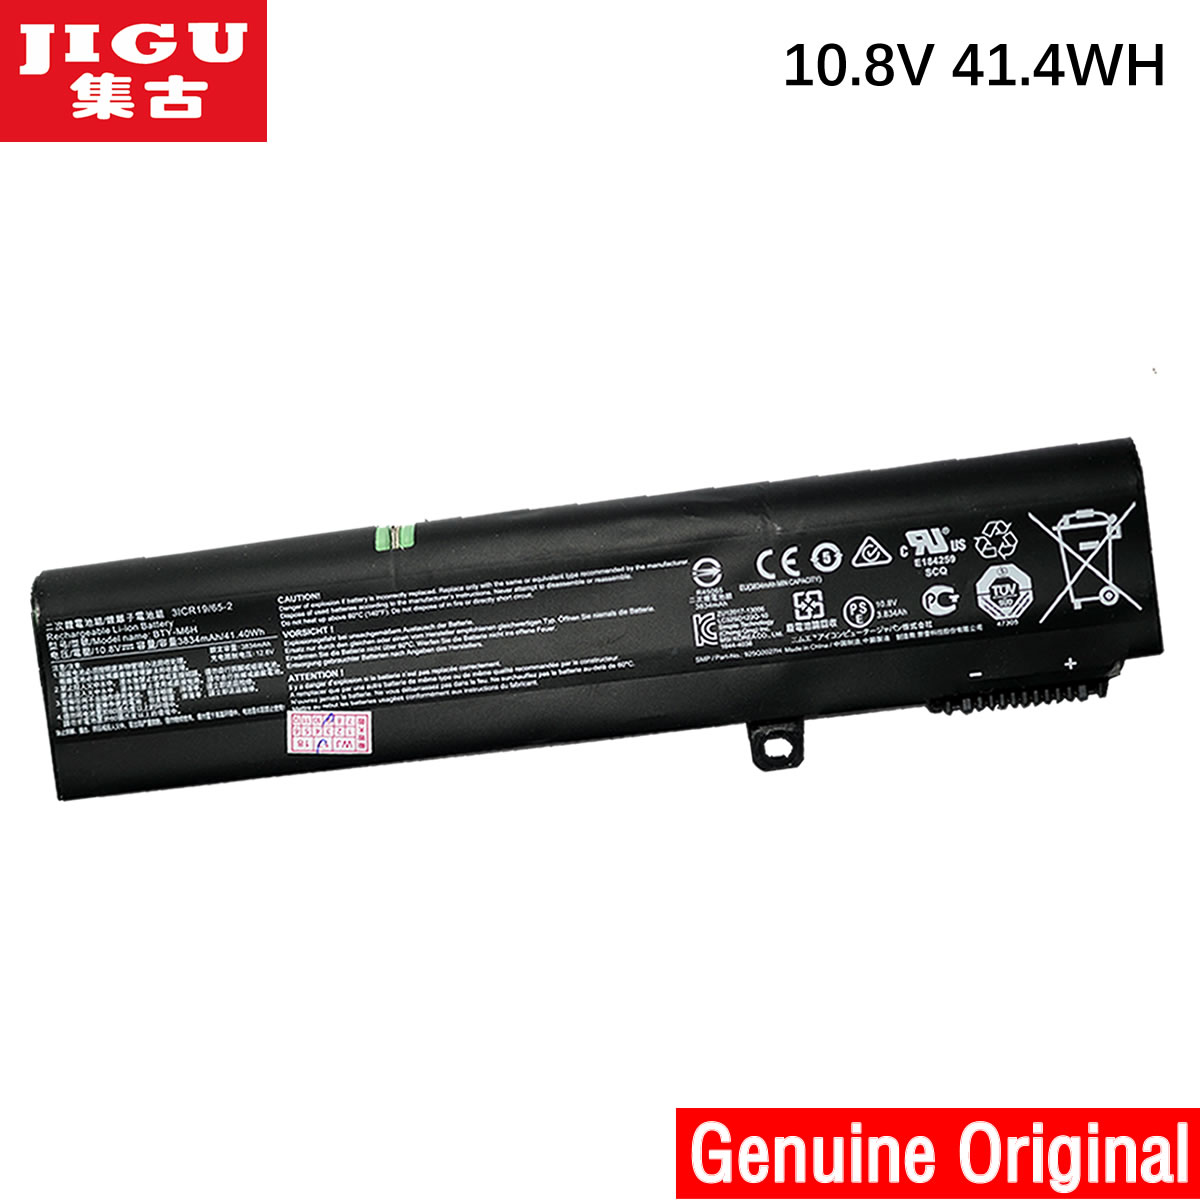 JIGU ORIGNAL Laptop Battery 3ICR19/65-2 3ICR19/66-2 BTY-M6H FOR MSI GL62M GL72 GP62 GP62MVR 0016J9-083 GE62 GE72 цена и фото